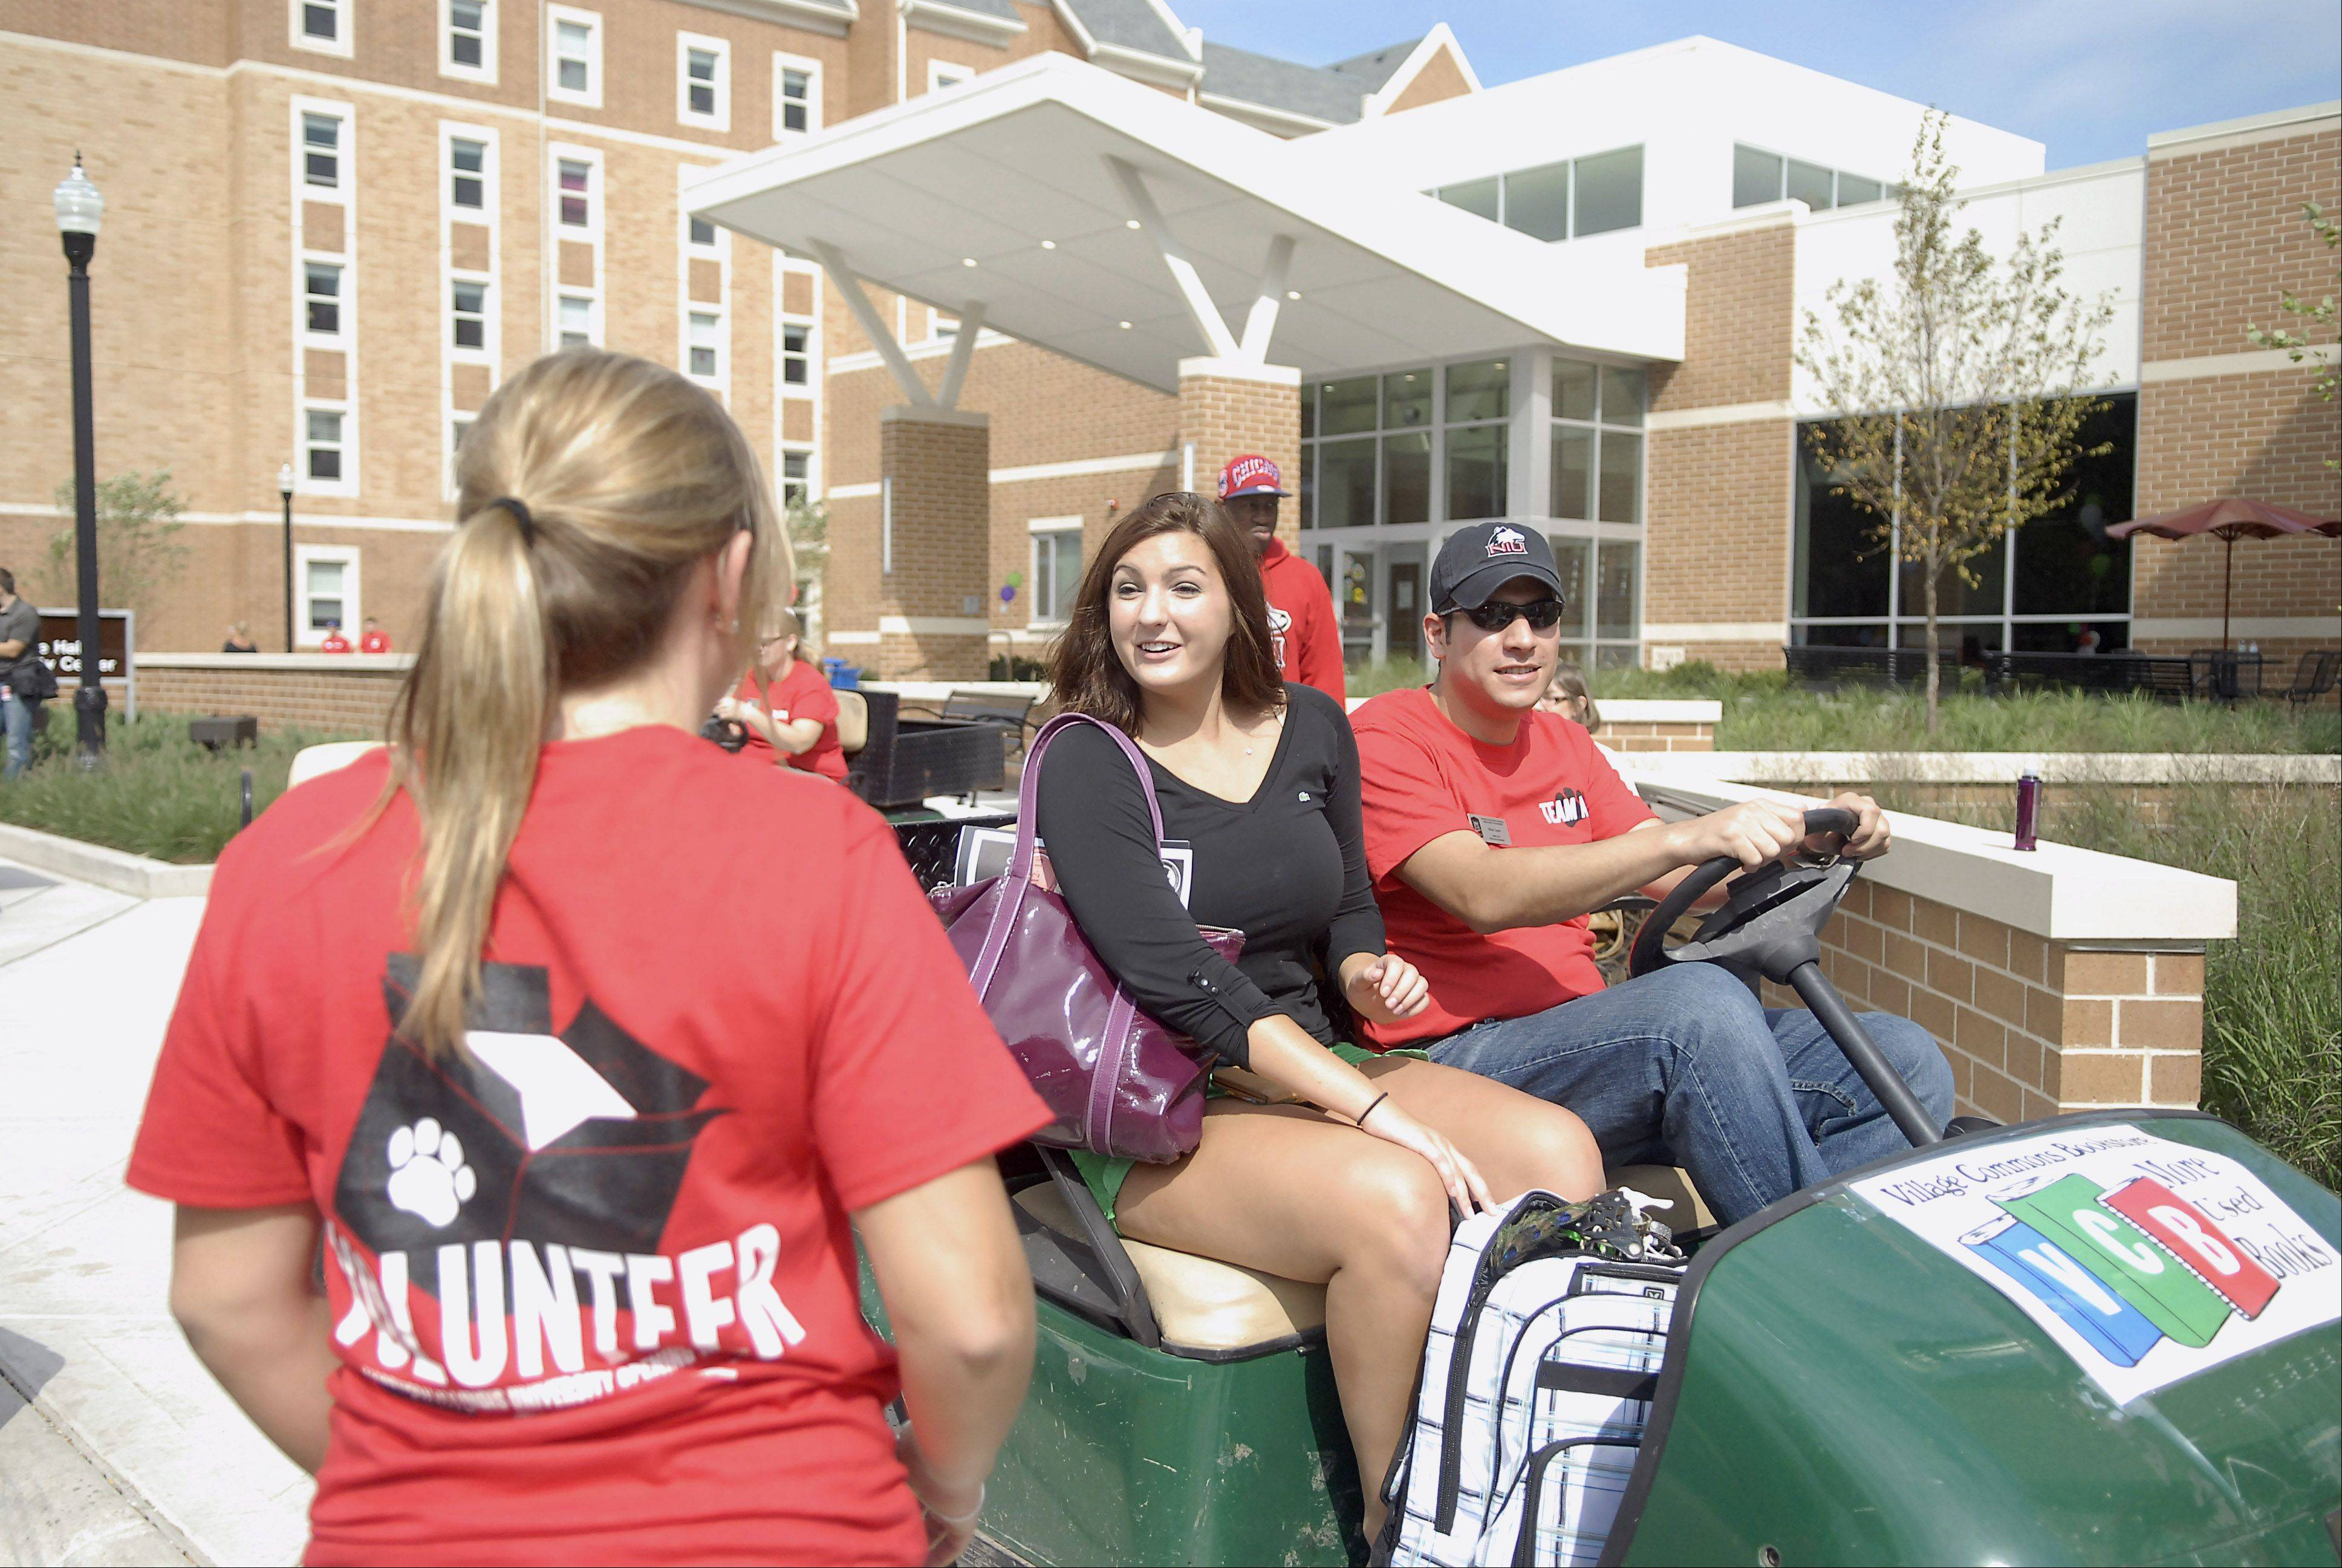 Martha Christopher of Geneva is greeted by a volunteer as she is shuttled to her dorm in the New Residence Hall East at Northern Illinois University in DeKalb on Thursday, August 23.